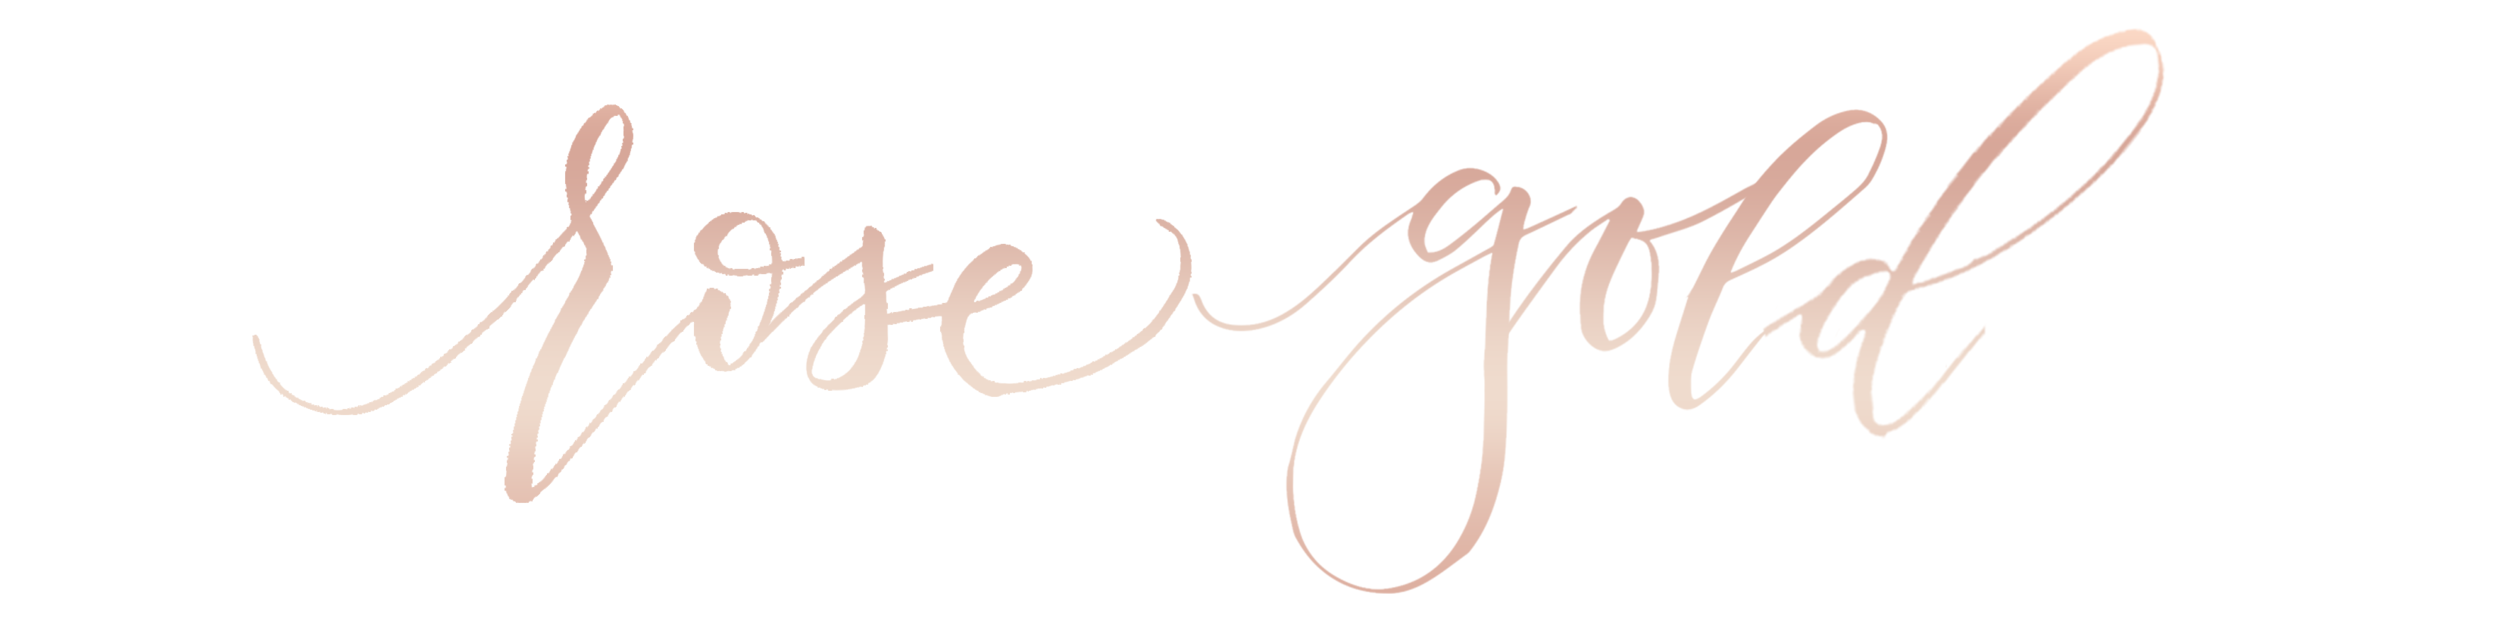 Rose-Gold-Calligraphy-2.png